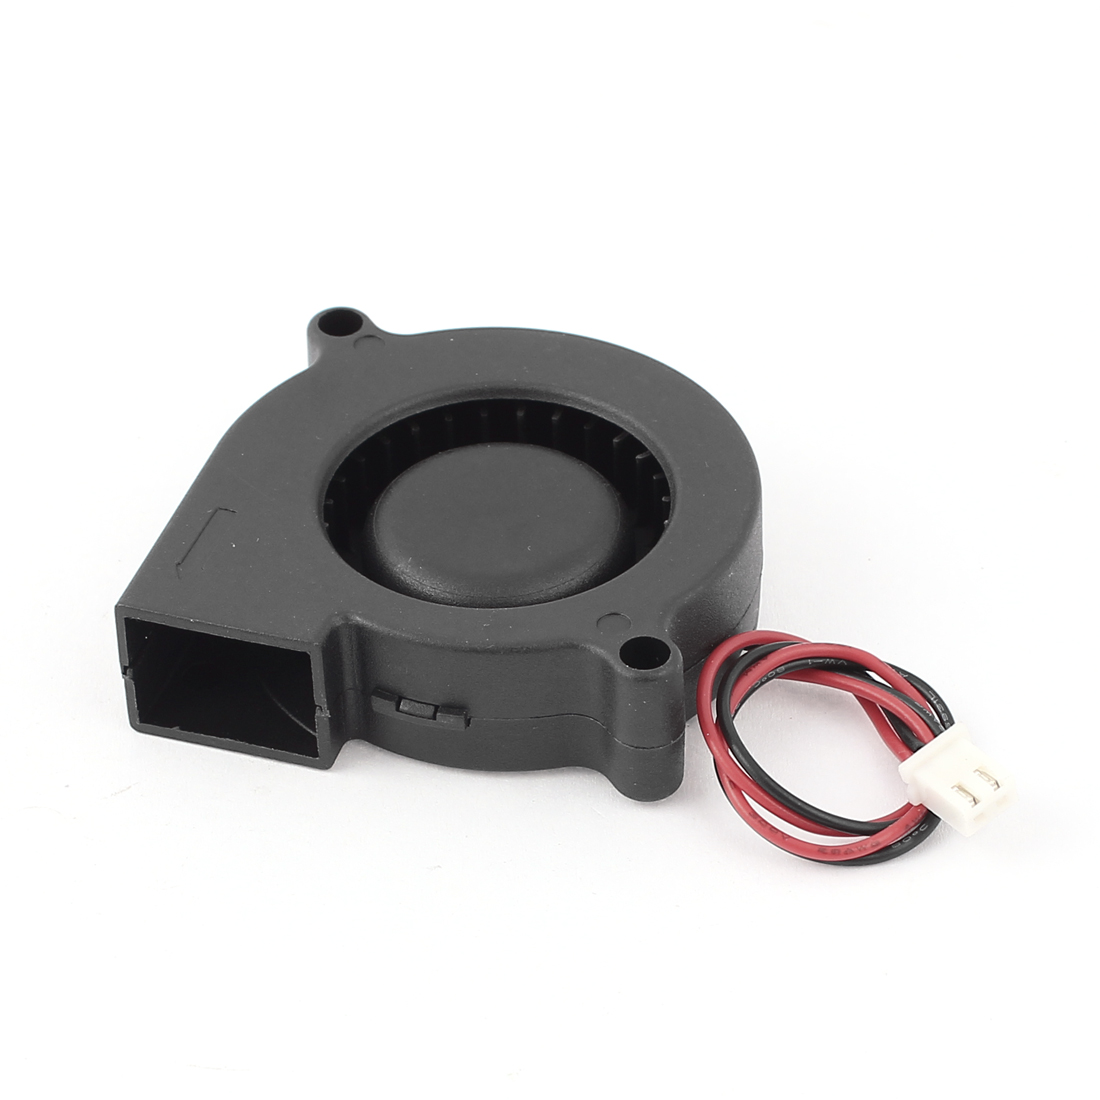 DC 12V 0.12A Computer Case Heatsink Cooler Brushless Cooling Blower Fan